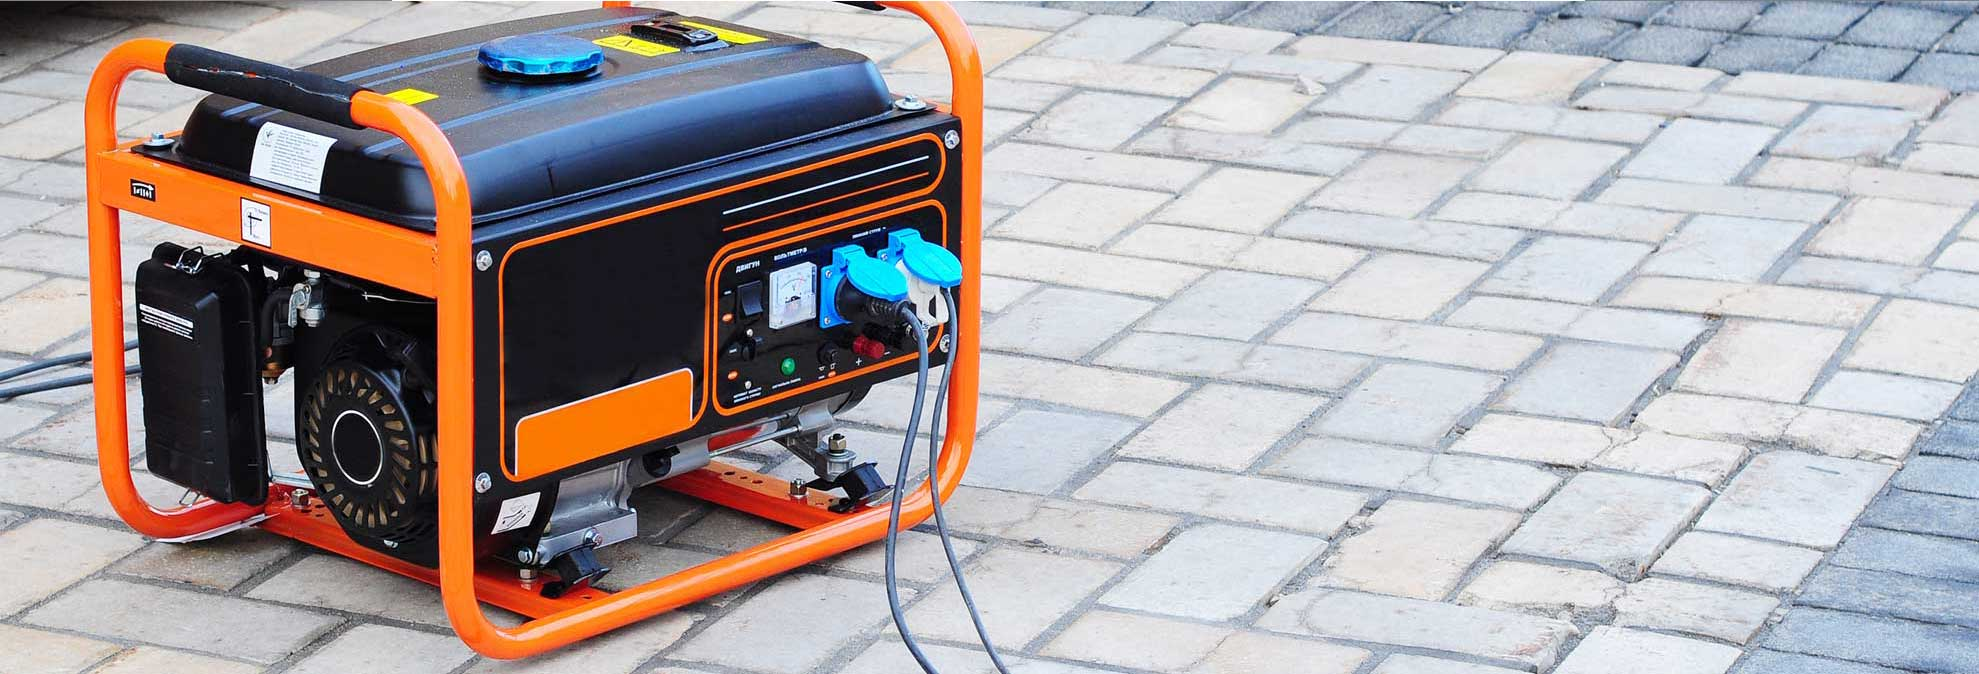 best generator buying guide - consumer reports